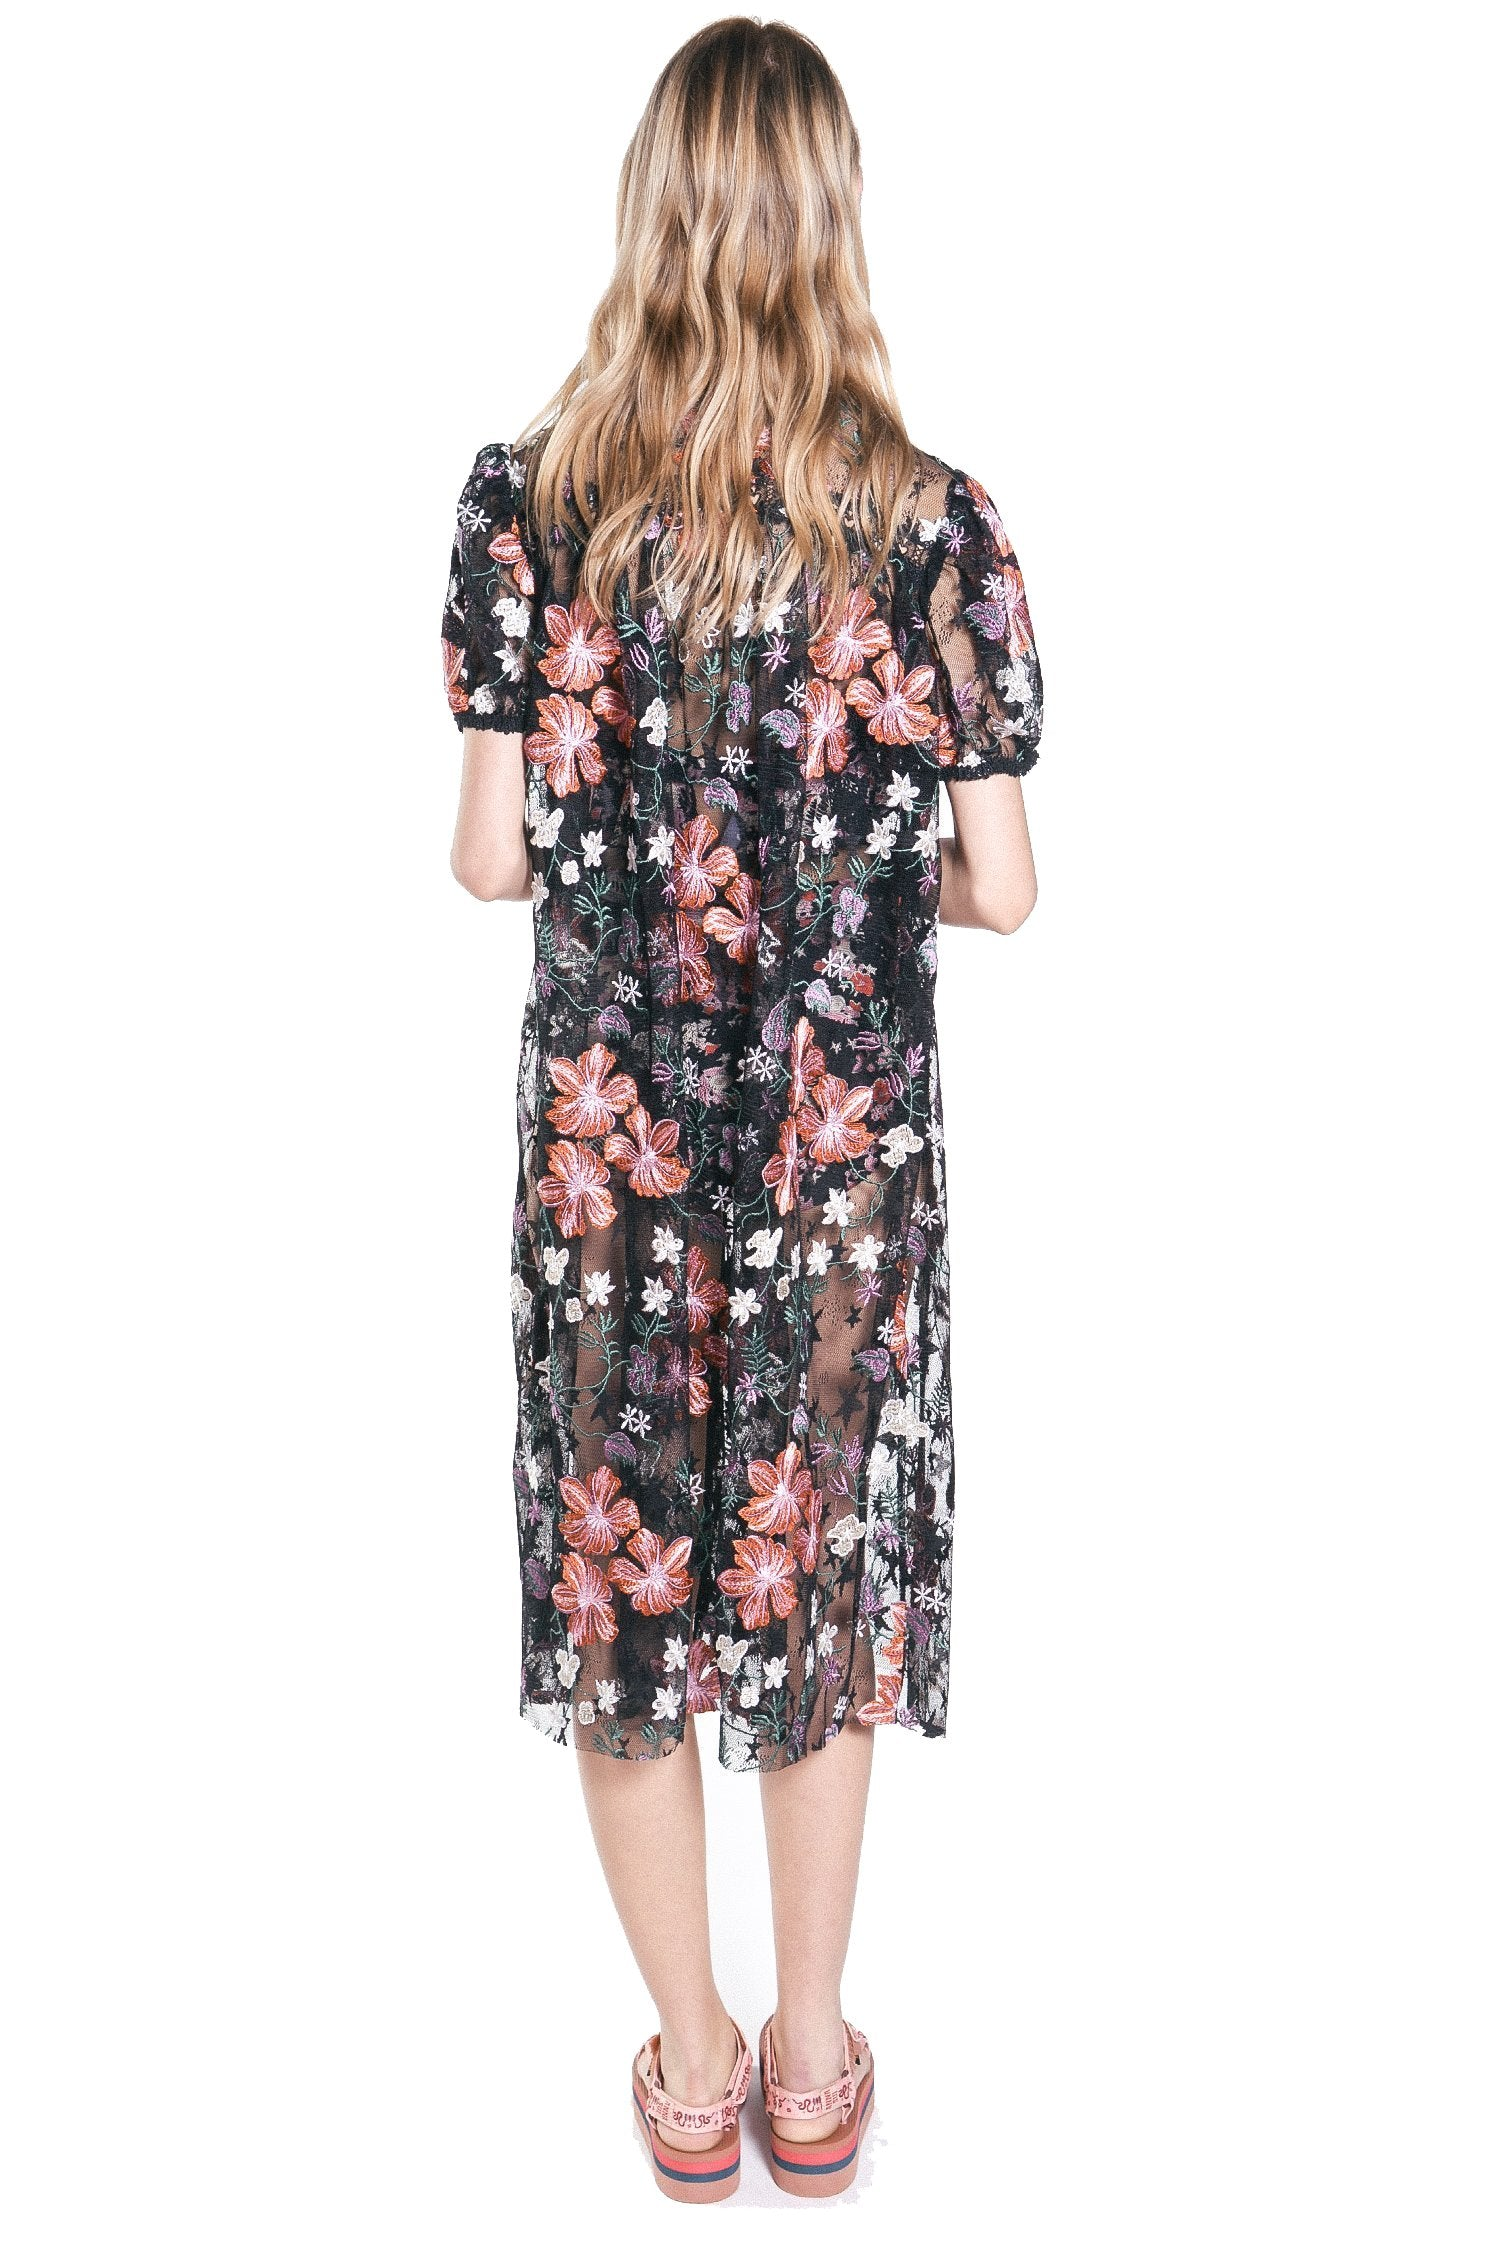 Hibiscus Embroidered Mesh Cover-Up - Anna Sui